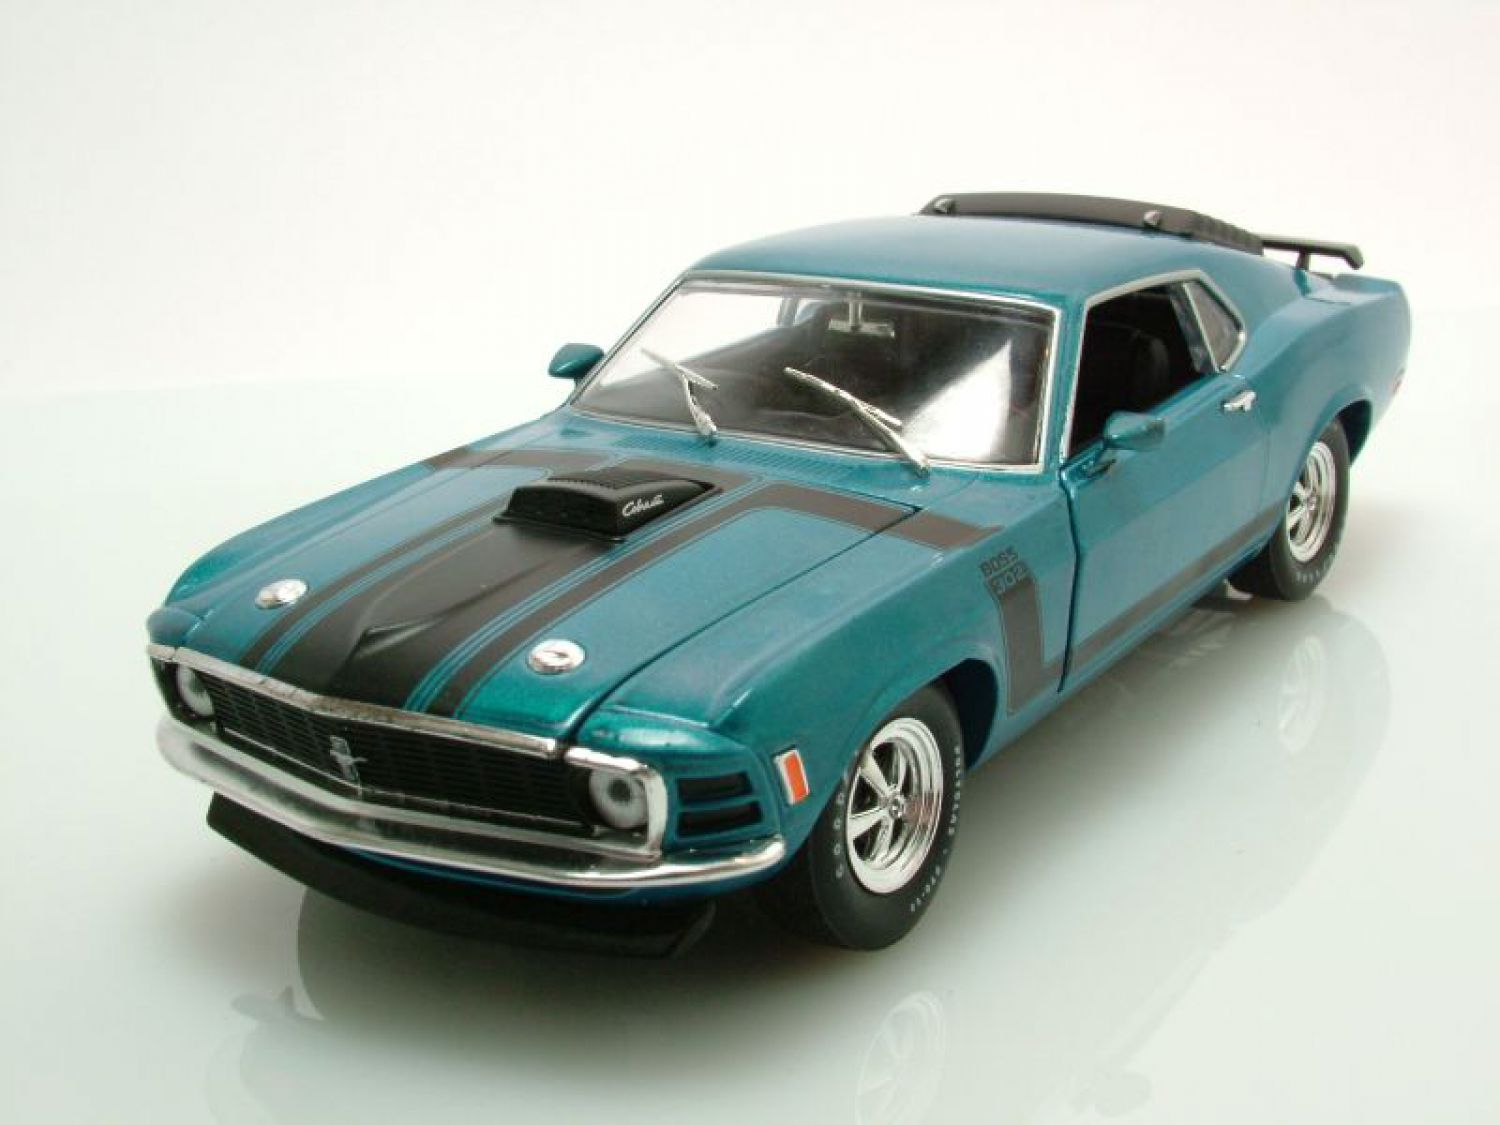 ford mustang boss 302 1970 blau metallic modellauto 1 24. Black Bedroom Furniture Sets. Home Design Ideas